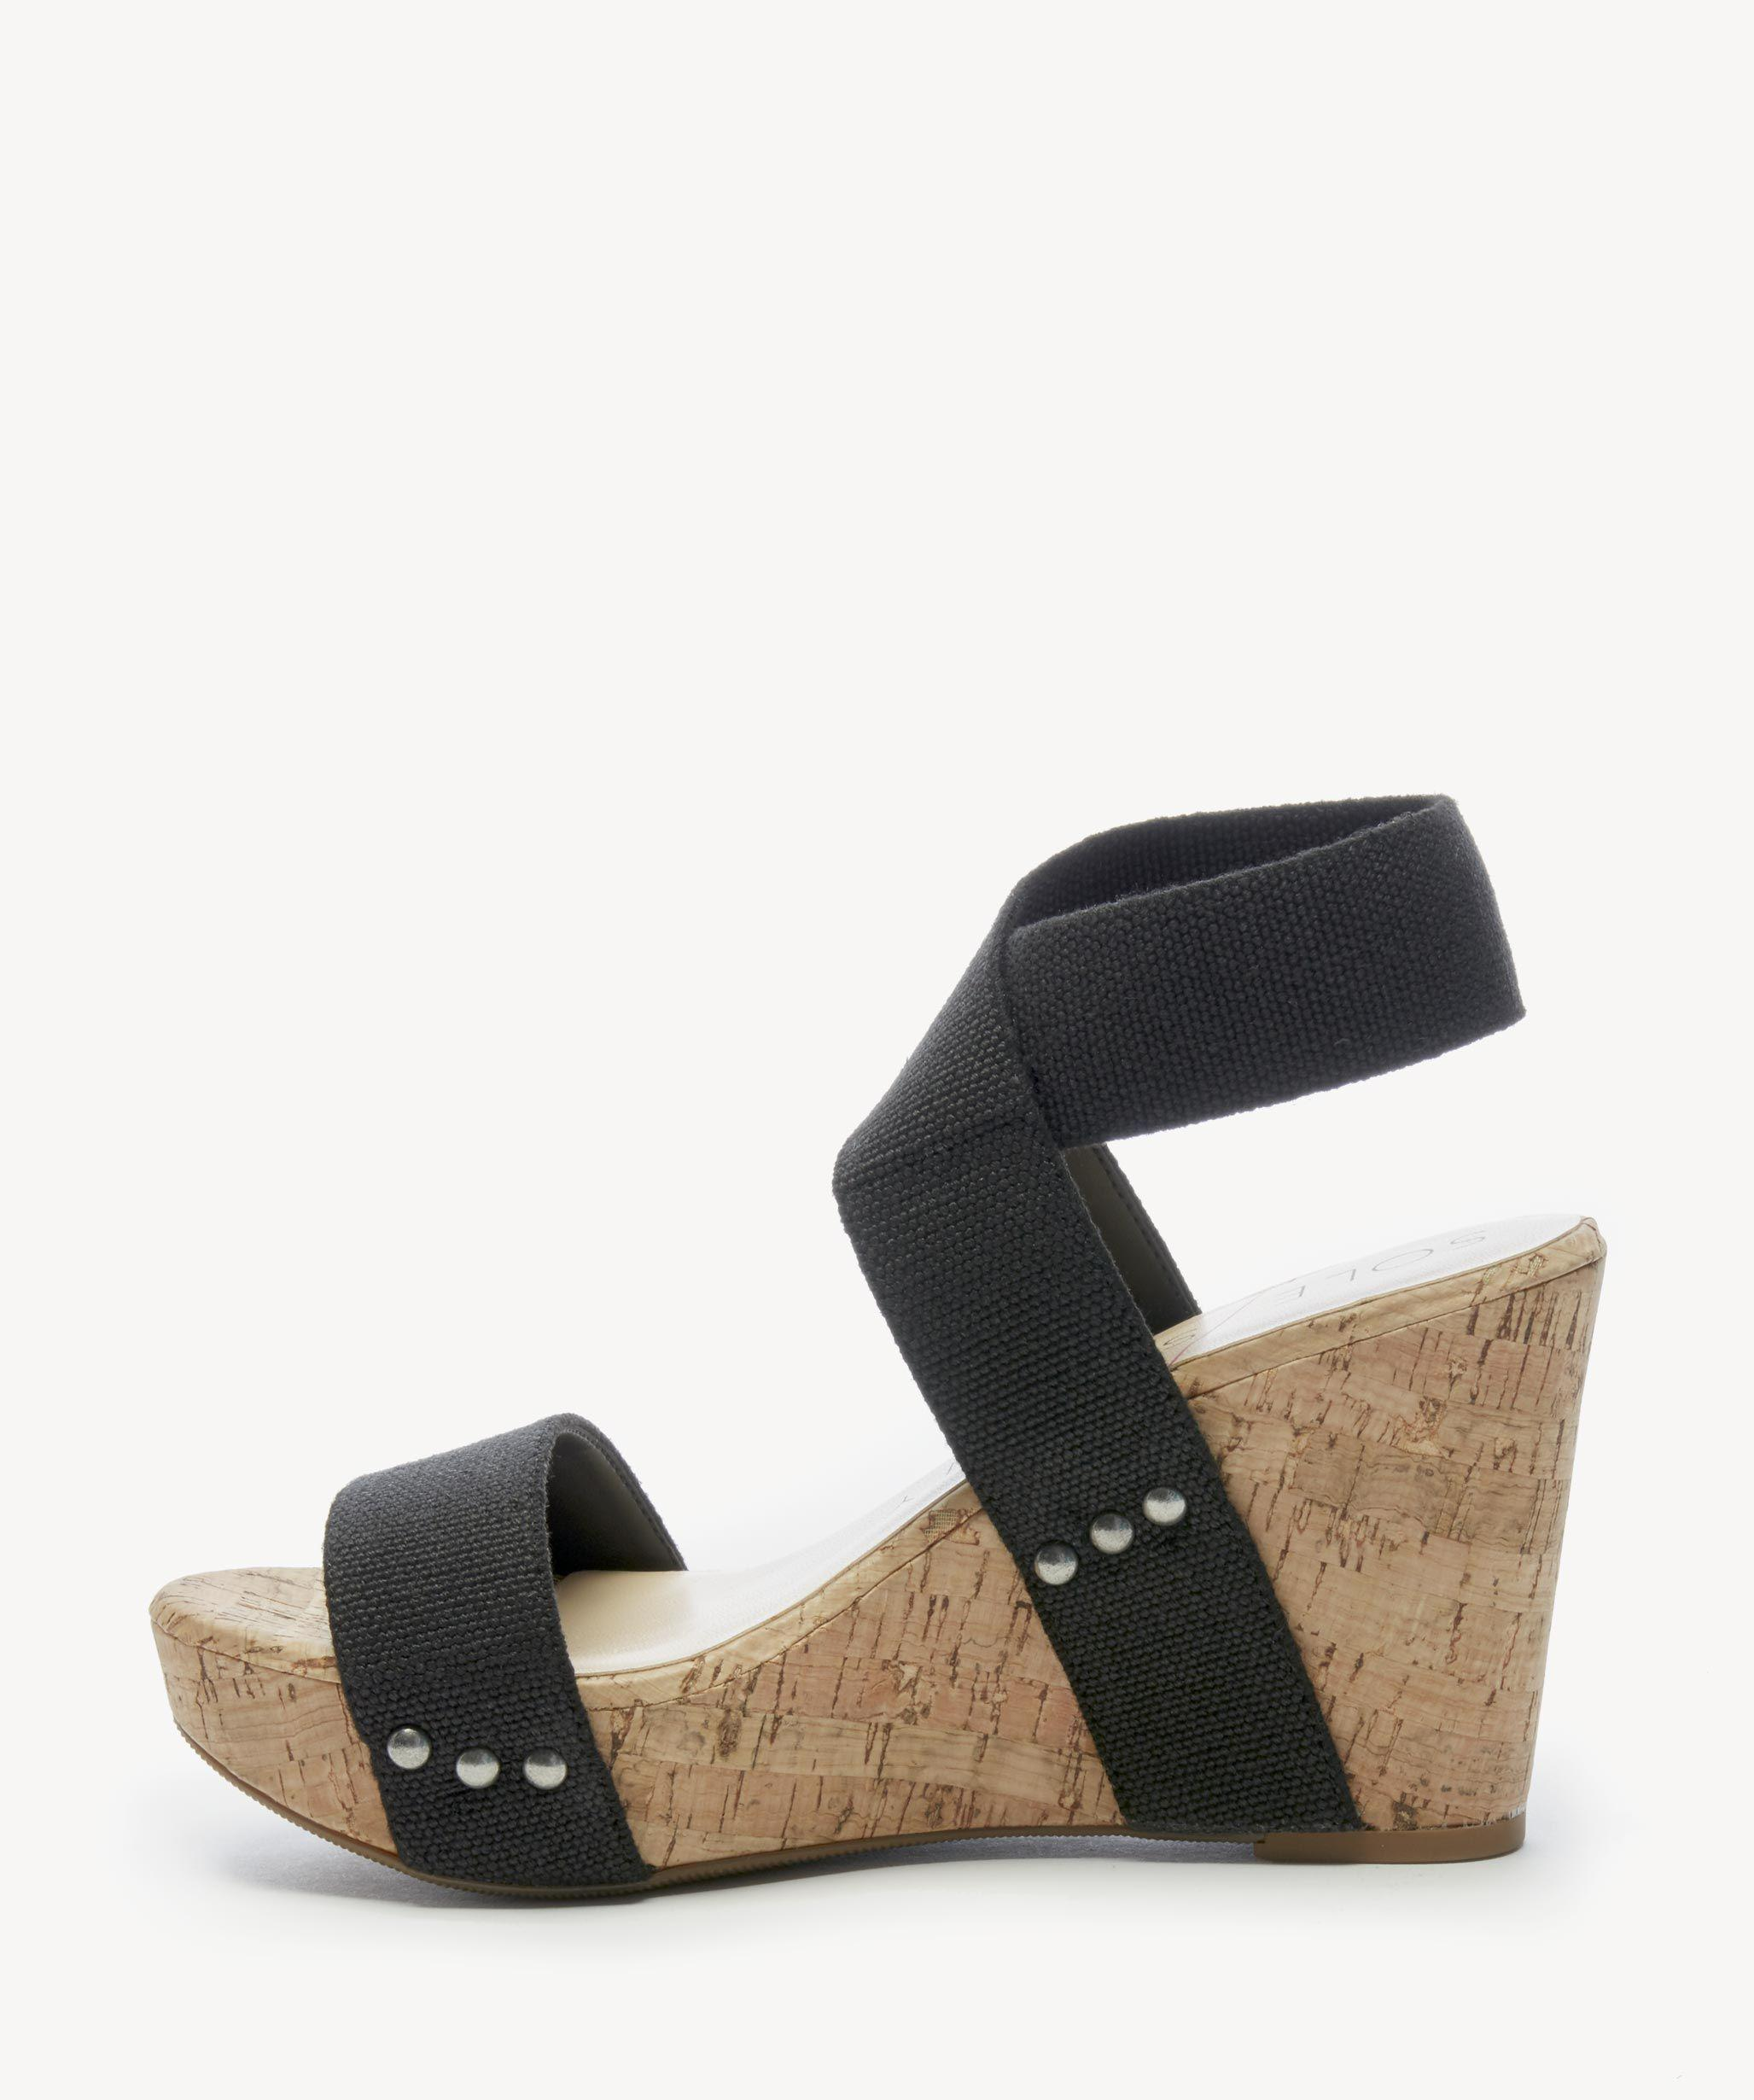 11690a9d26 Sole Society Analisa Platform Wedge in Black - Lyst